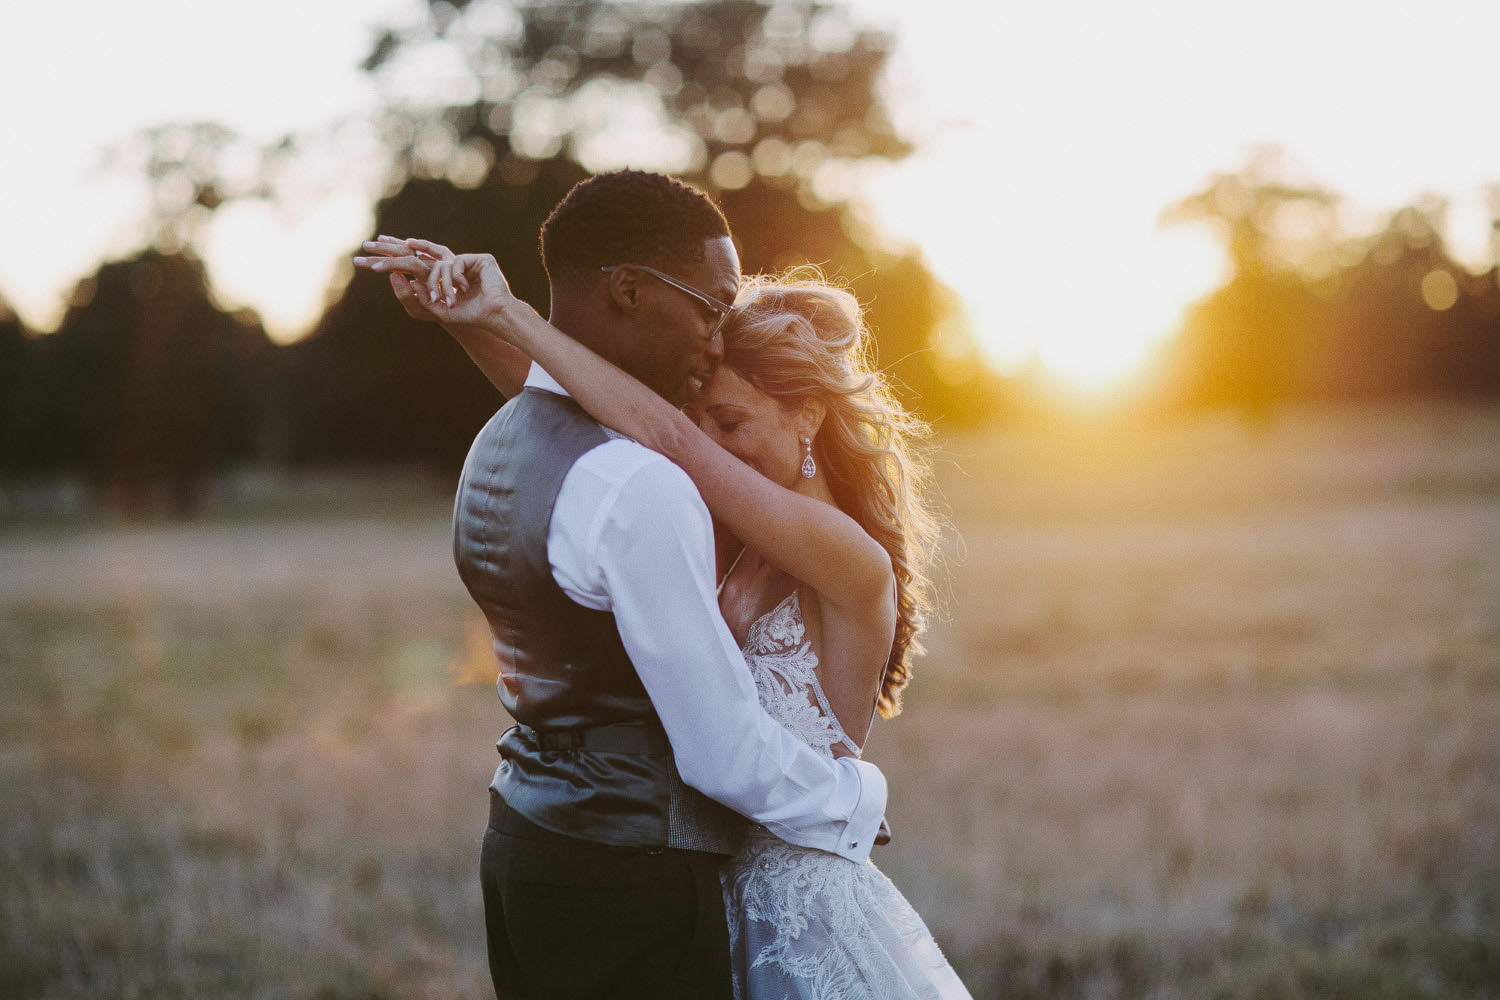 bride puts arms around groom in sunset at Kirtlington park